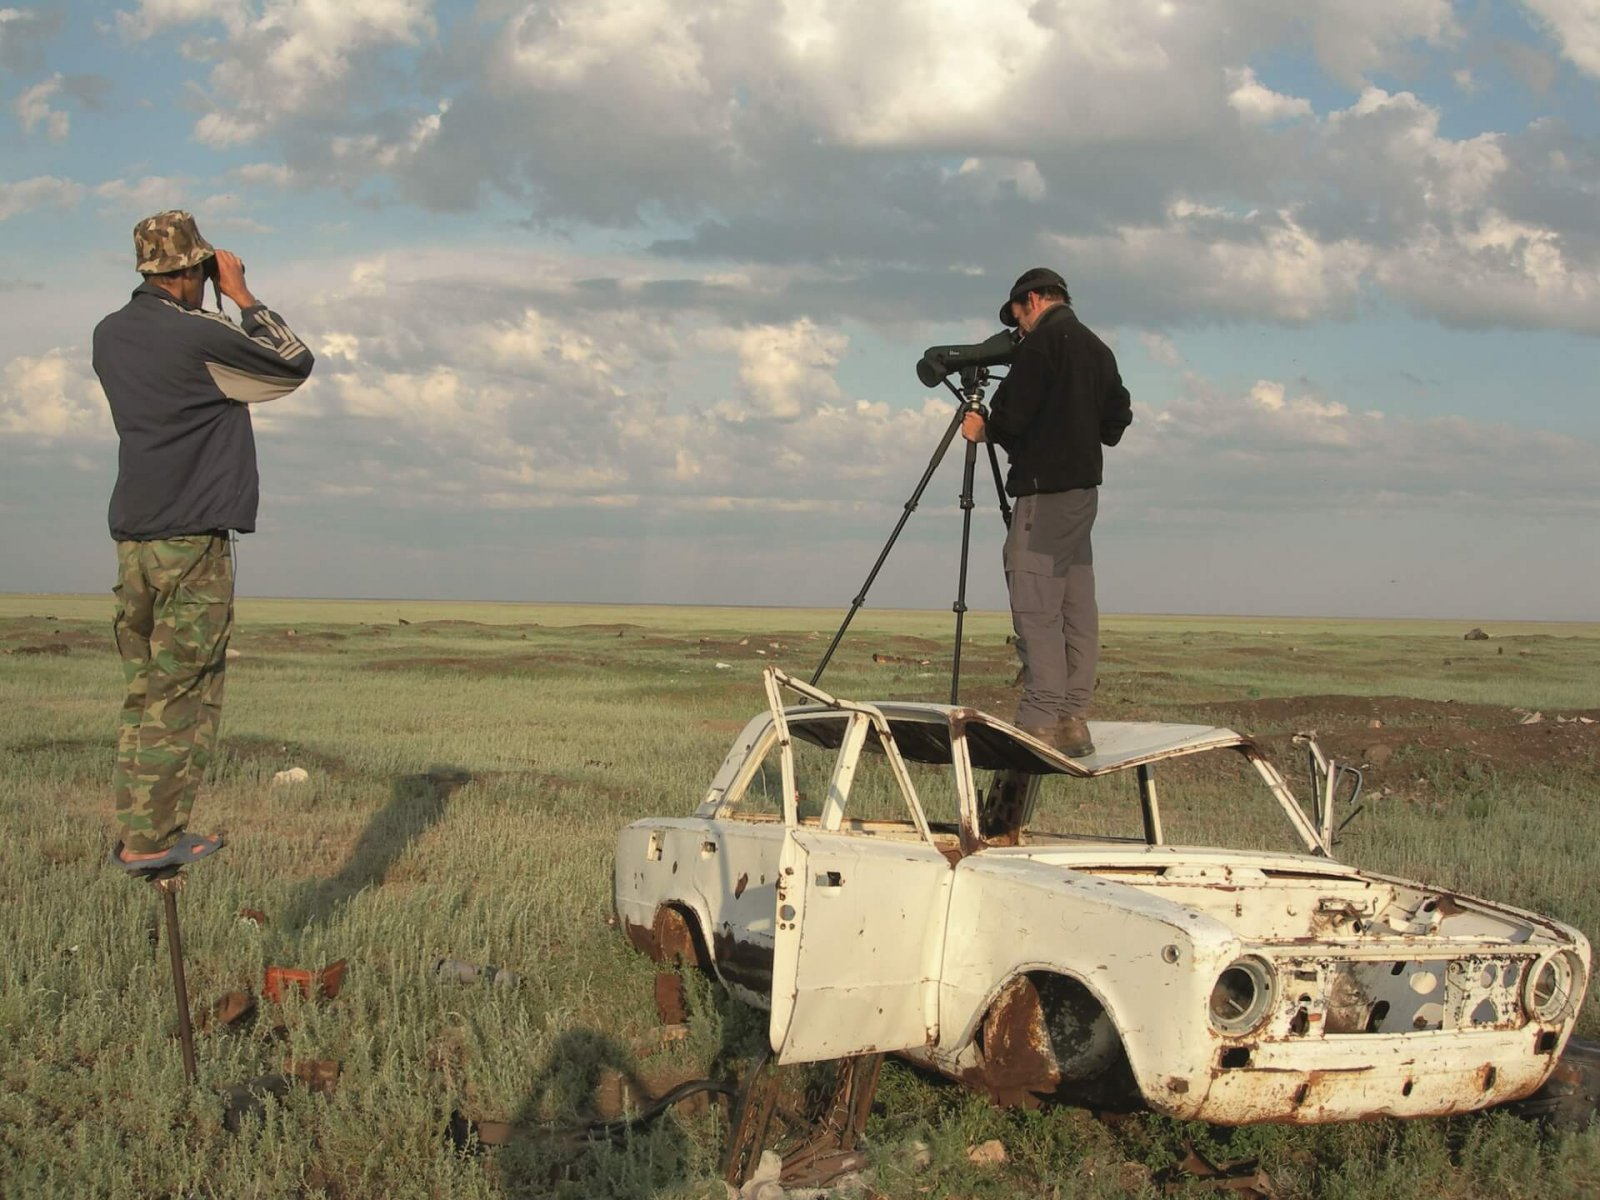 Researchers use any available vantage points to scan the vast steppe landscape © Rob Sheldon